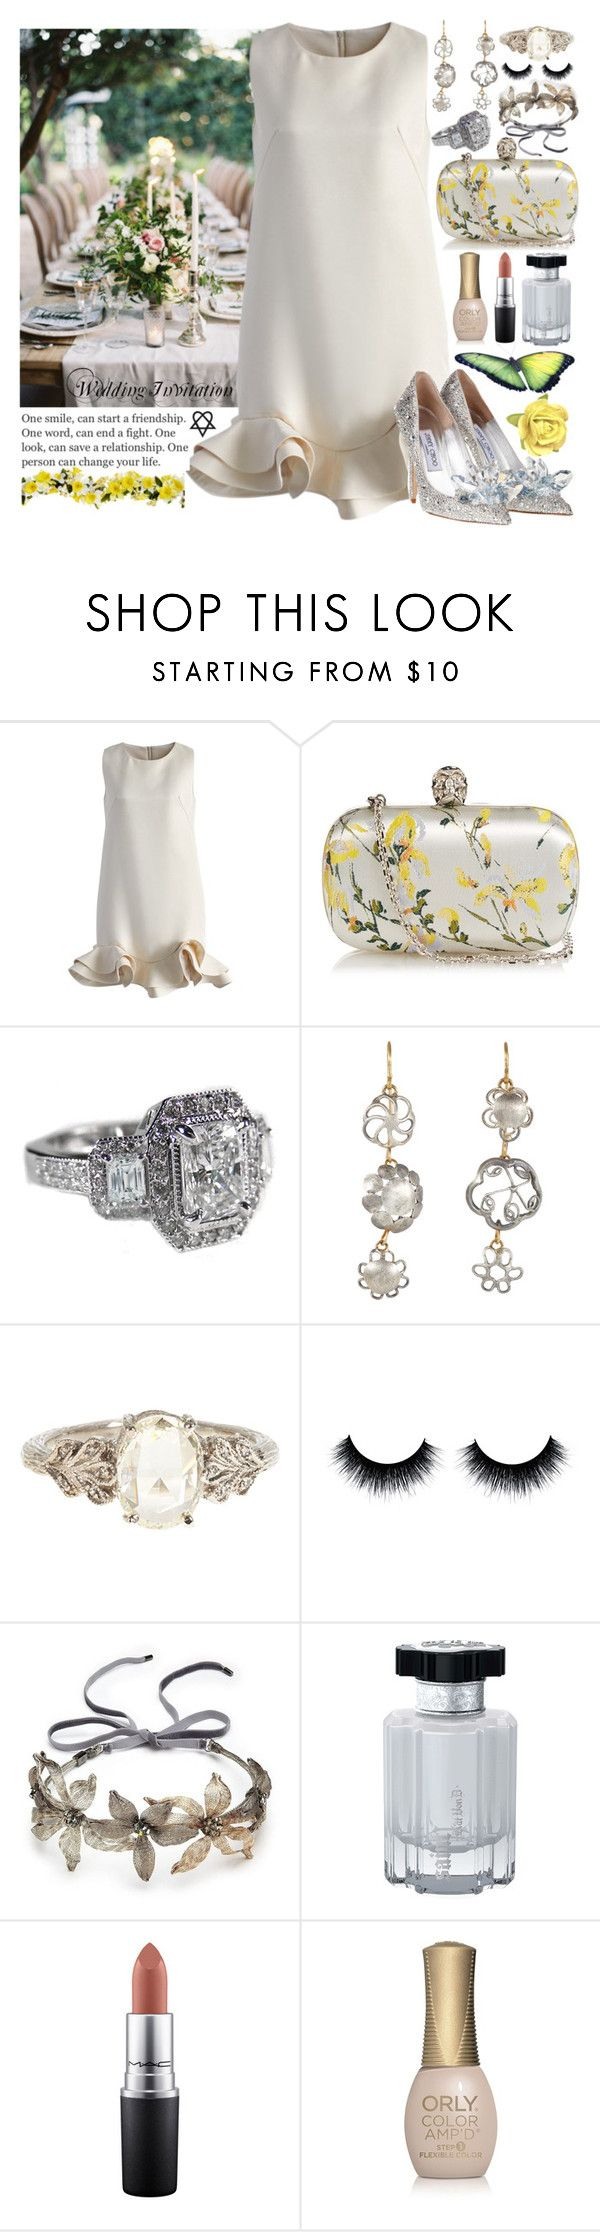 """""""759. One Person Can Change Your Life!"""" by khaosprincess ❤ liked on Polyvore featuring Reception, Chicwish, Alexander McQueen, Judy Geib, Cathy Waterman, Colette Malouf, Kat Von D, MAC Cosmetics and ORLY"""